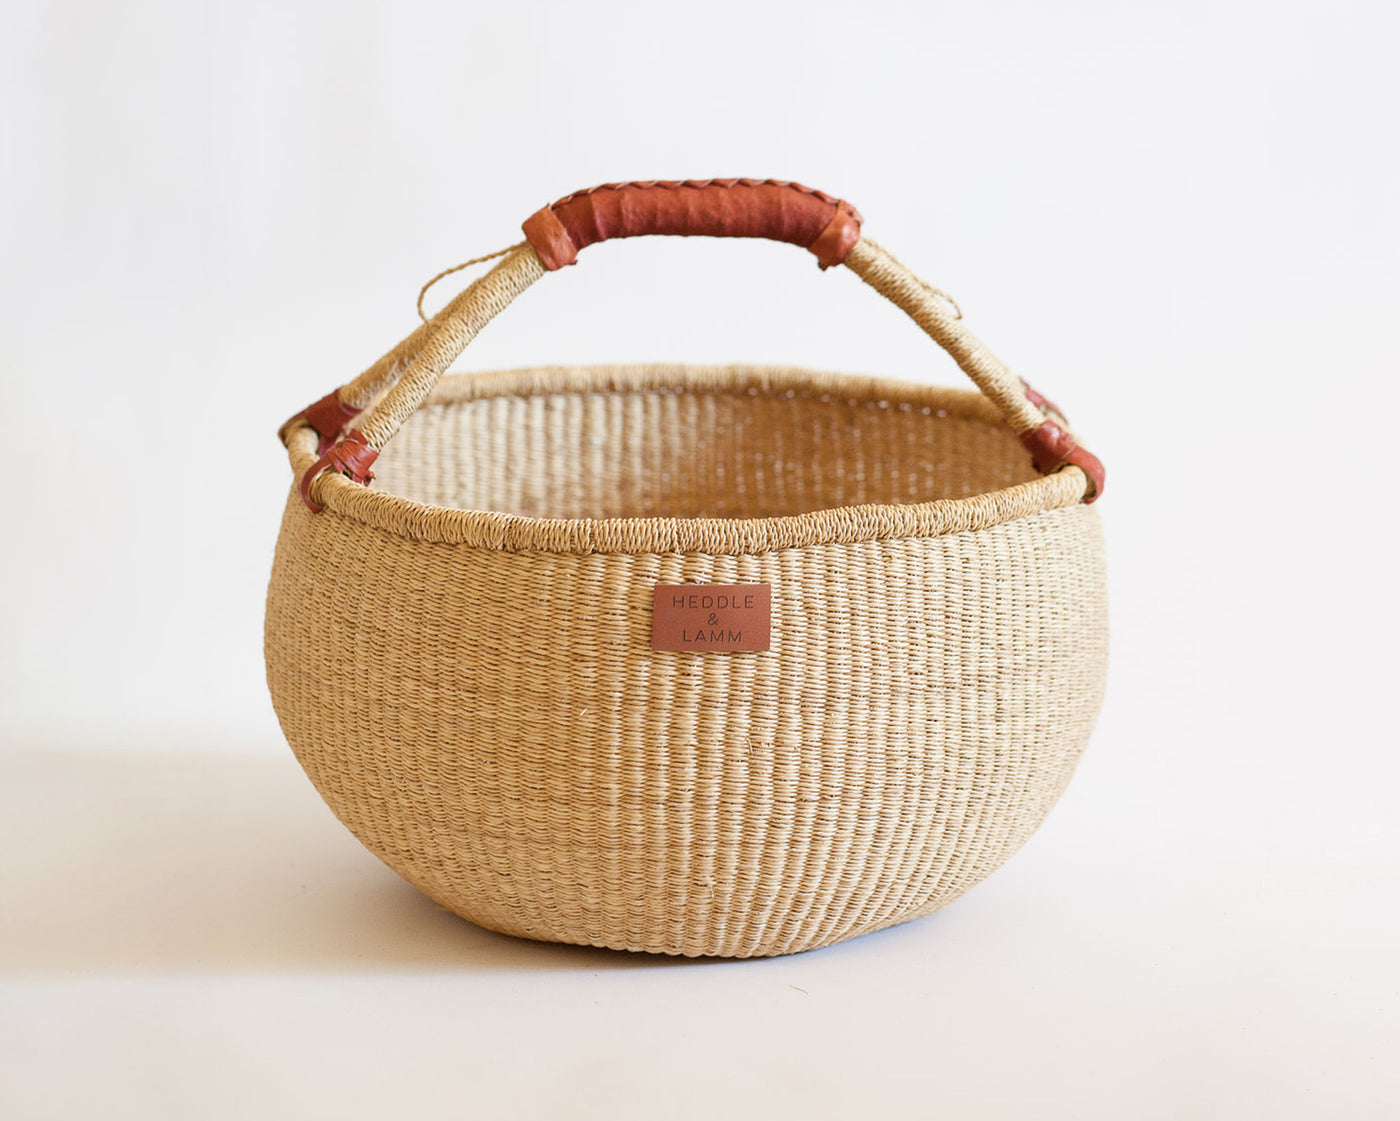 Kandiga Bolga Basket - Brown Handle - Heddle & Lamm